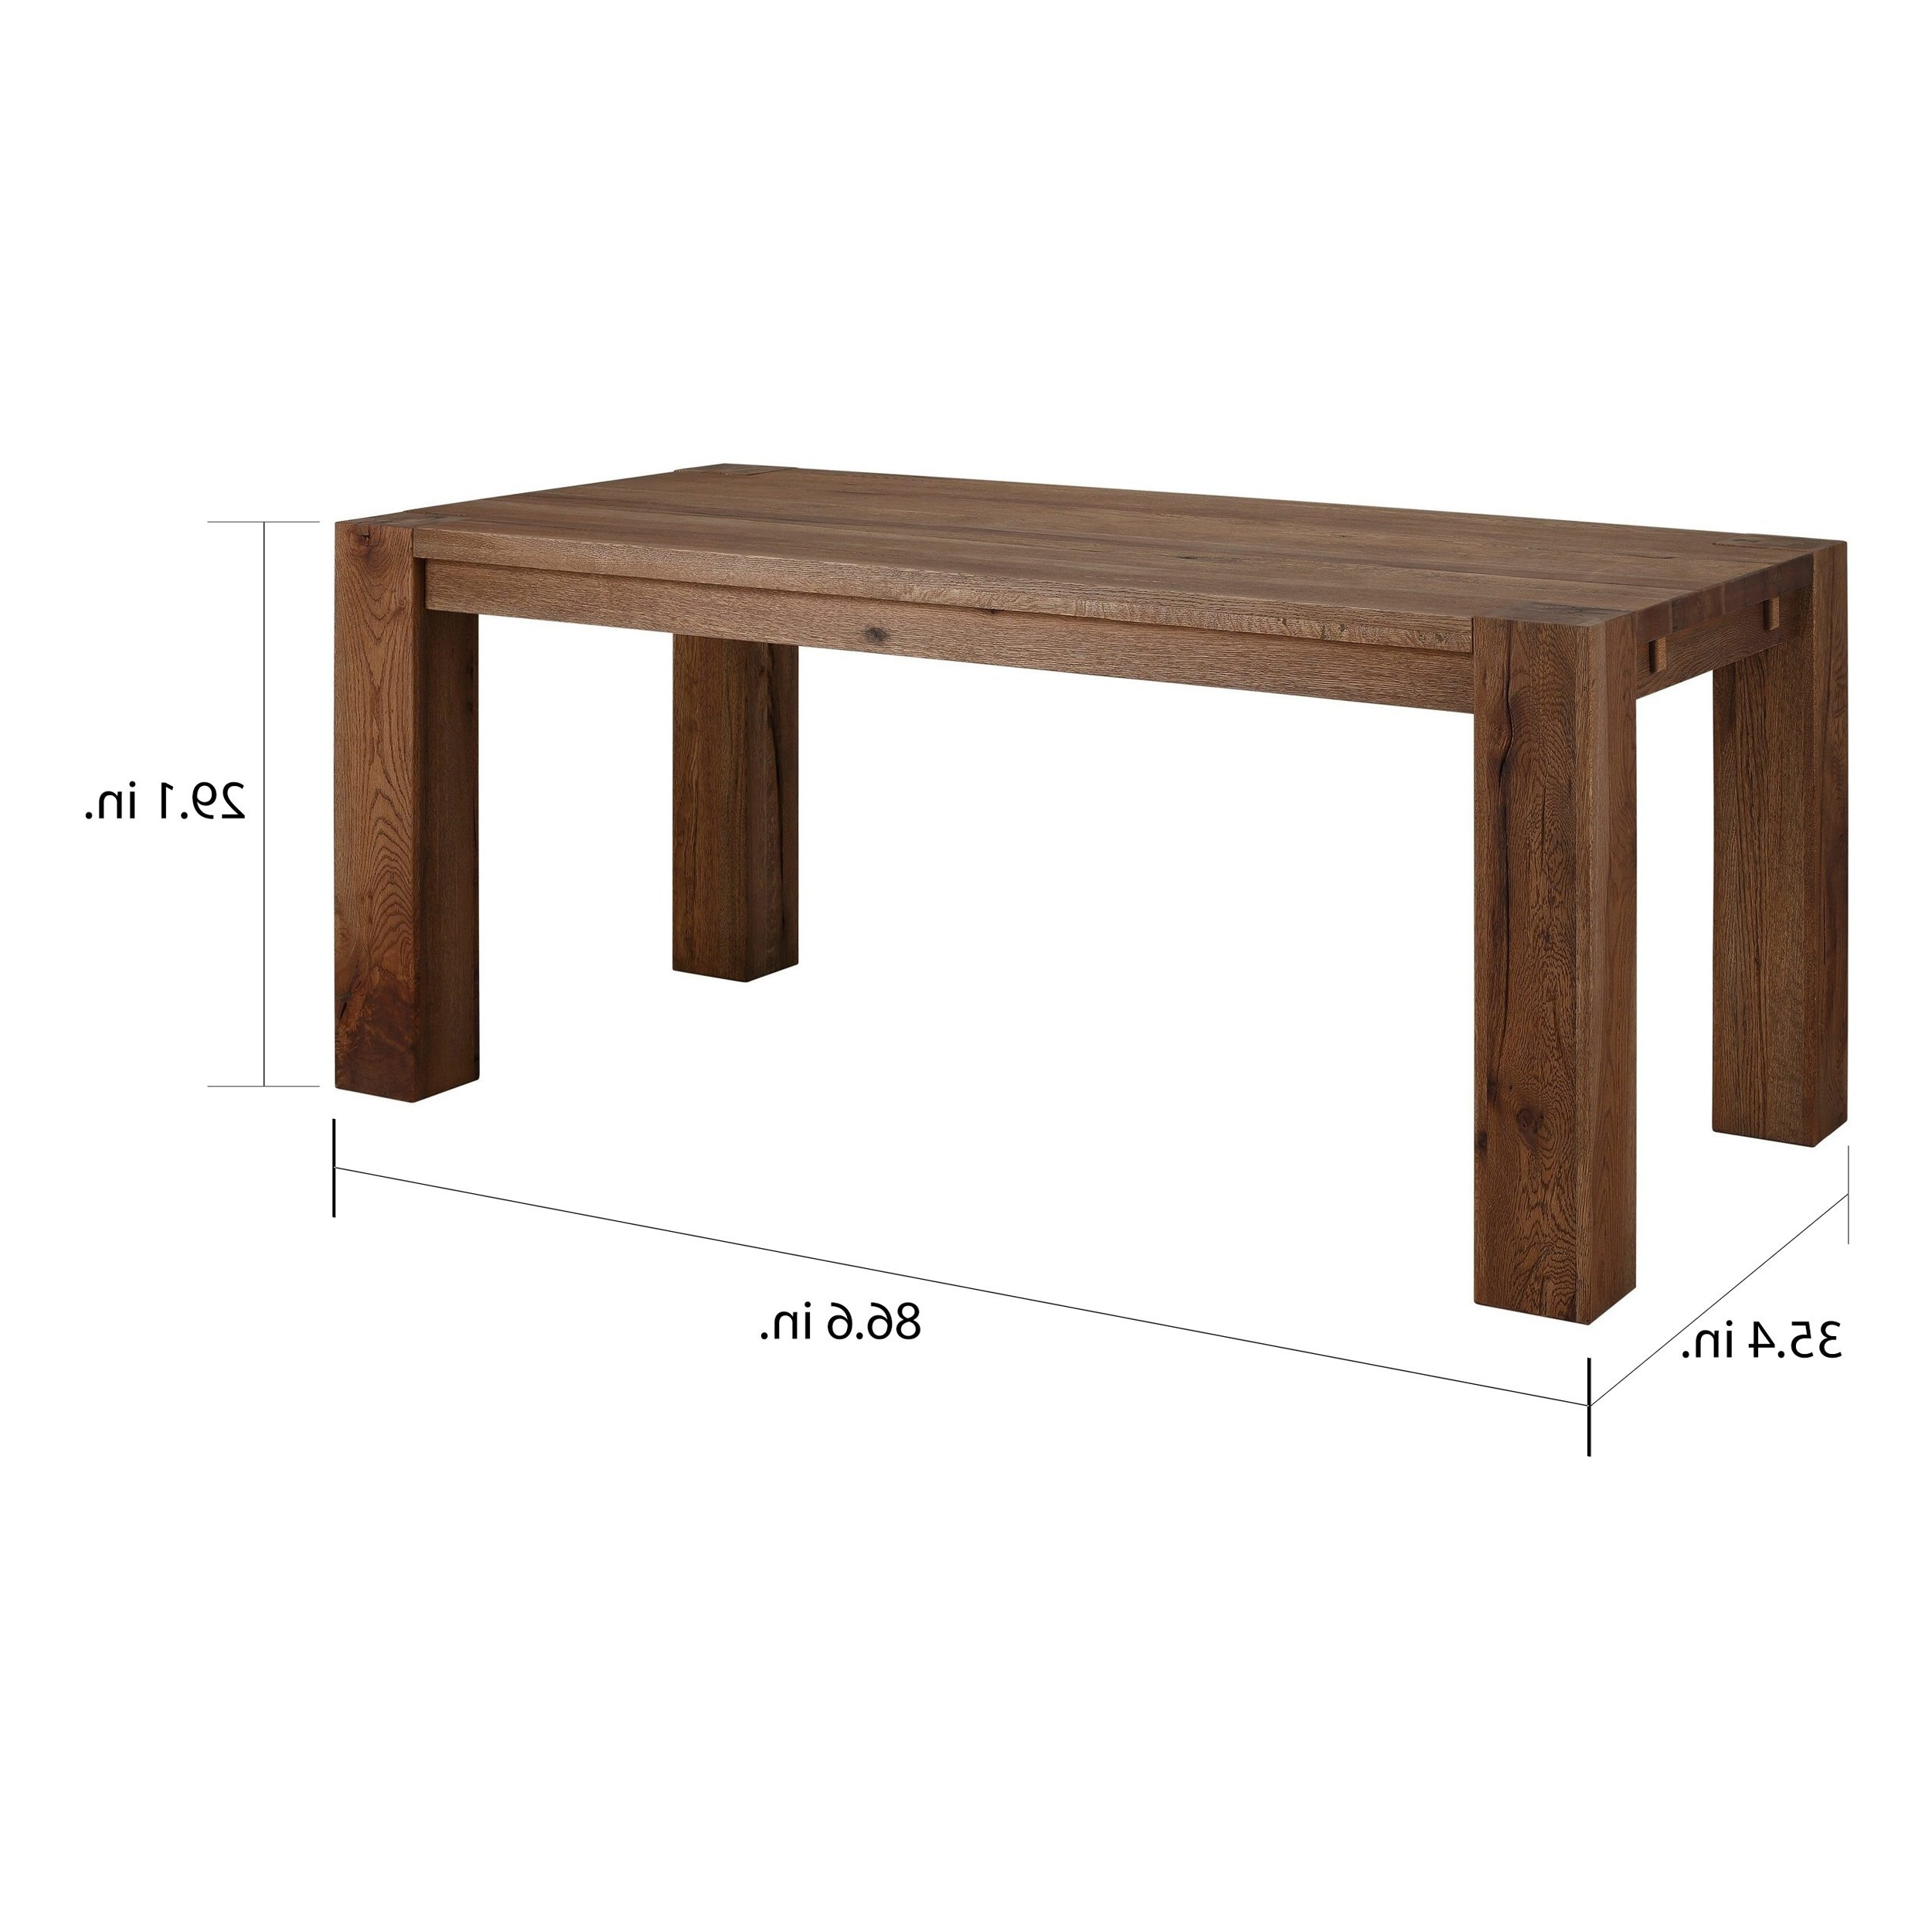 2018 87 Inch Dining Tables Intended For Shop Matrix 87 Inch Wild Oak Dining Table, Smoked – On Sale – Free (View 7 of 25)